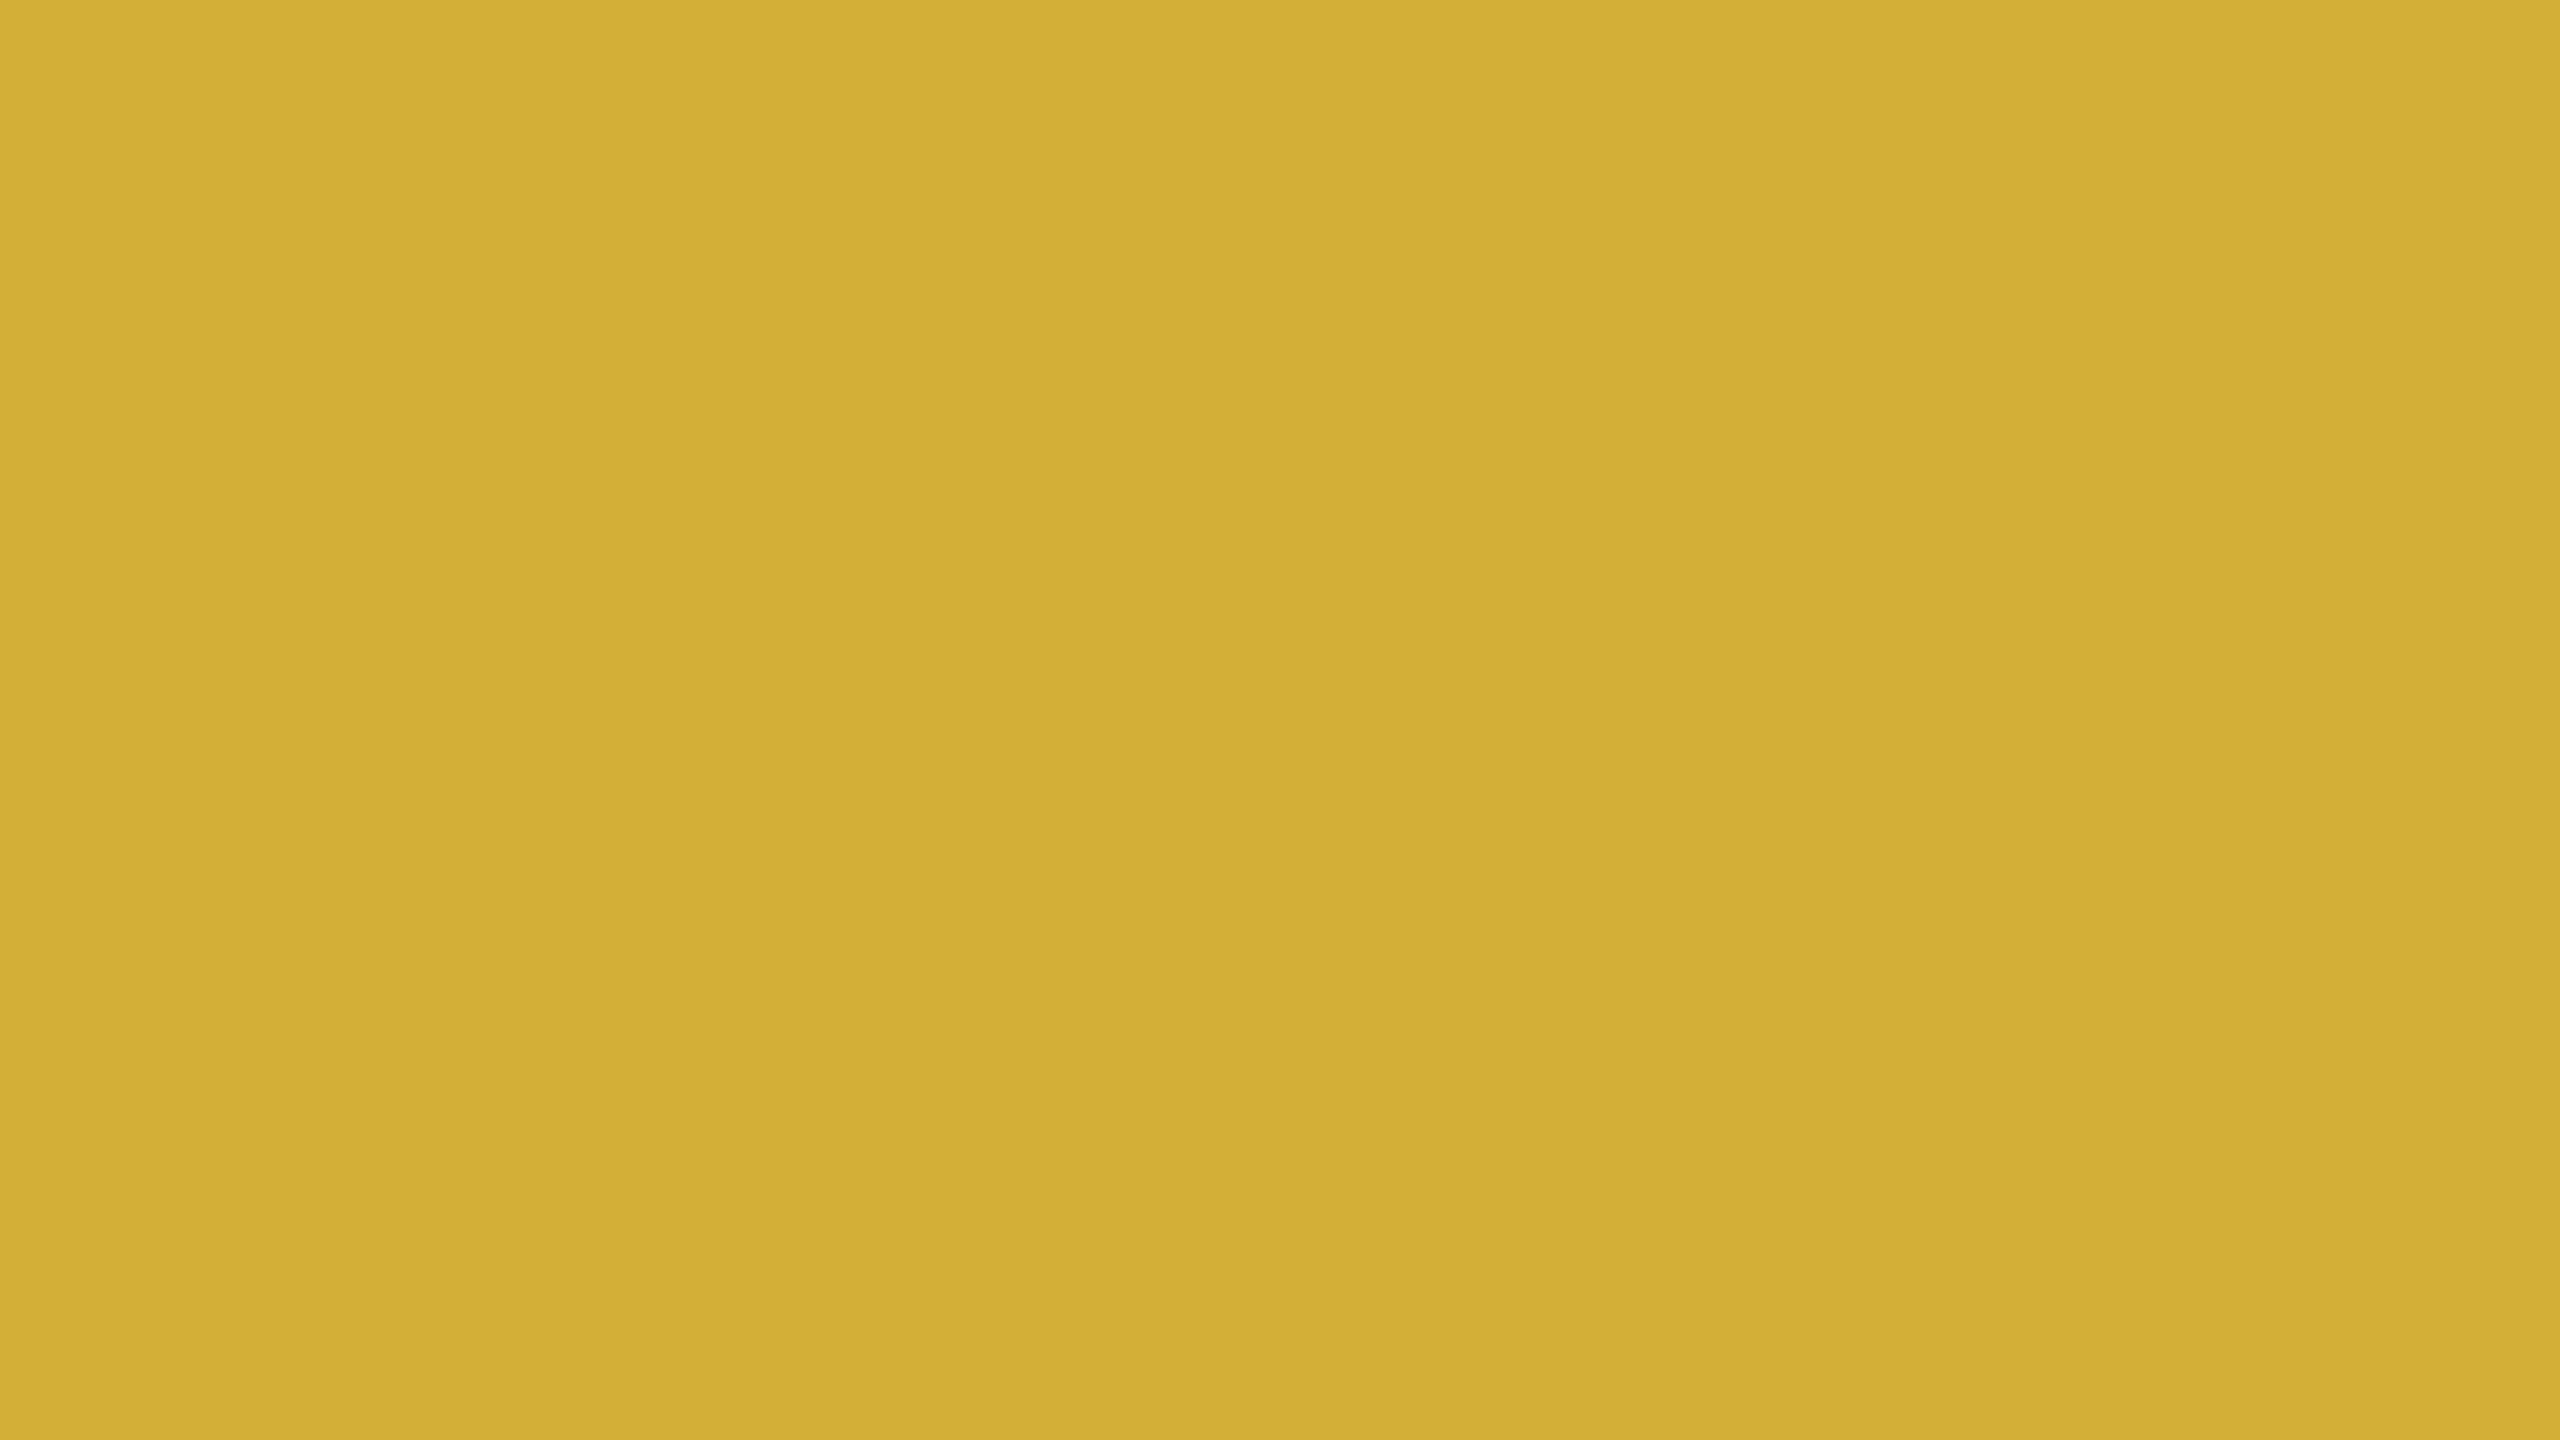 2560x1440goldmetallicsolidcolorbackground the